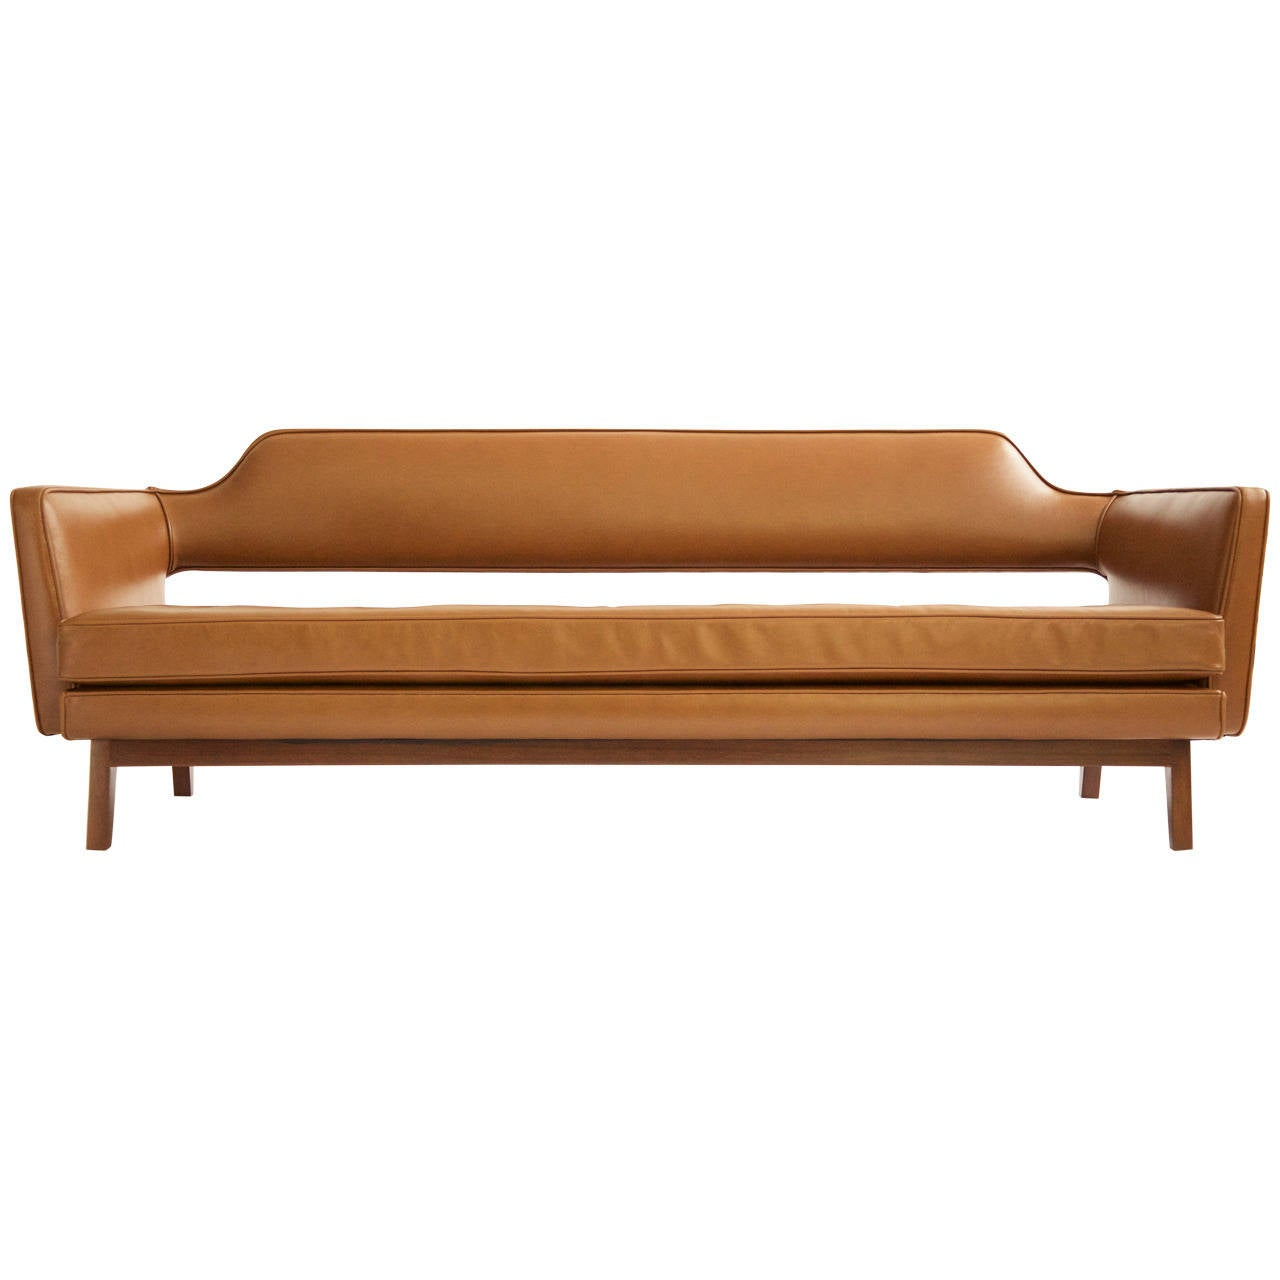 Edward wormley open back sofa at 1stdibs for Settee without back